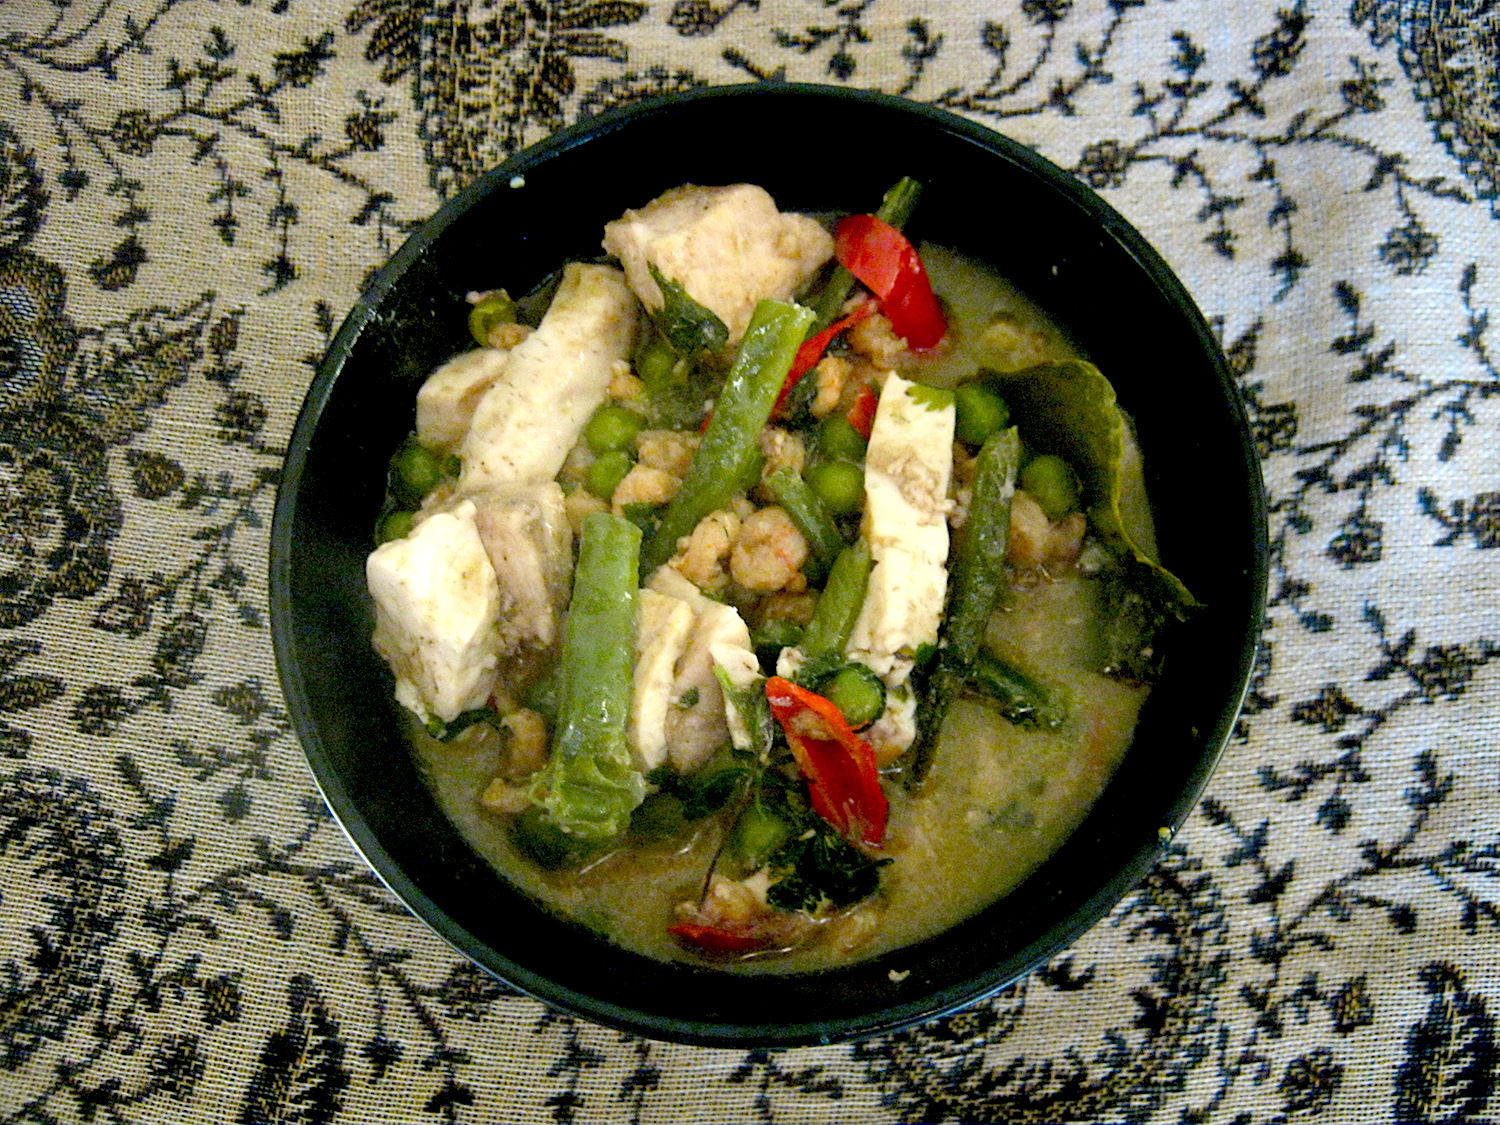 Thai green curry with swordfish and prawns in a black bowl